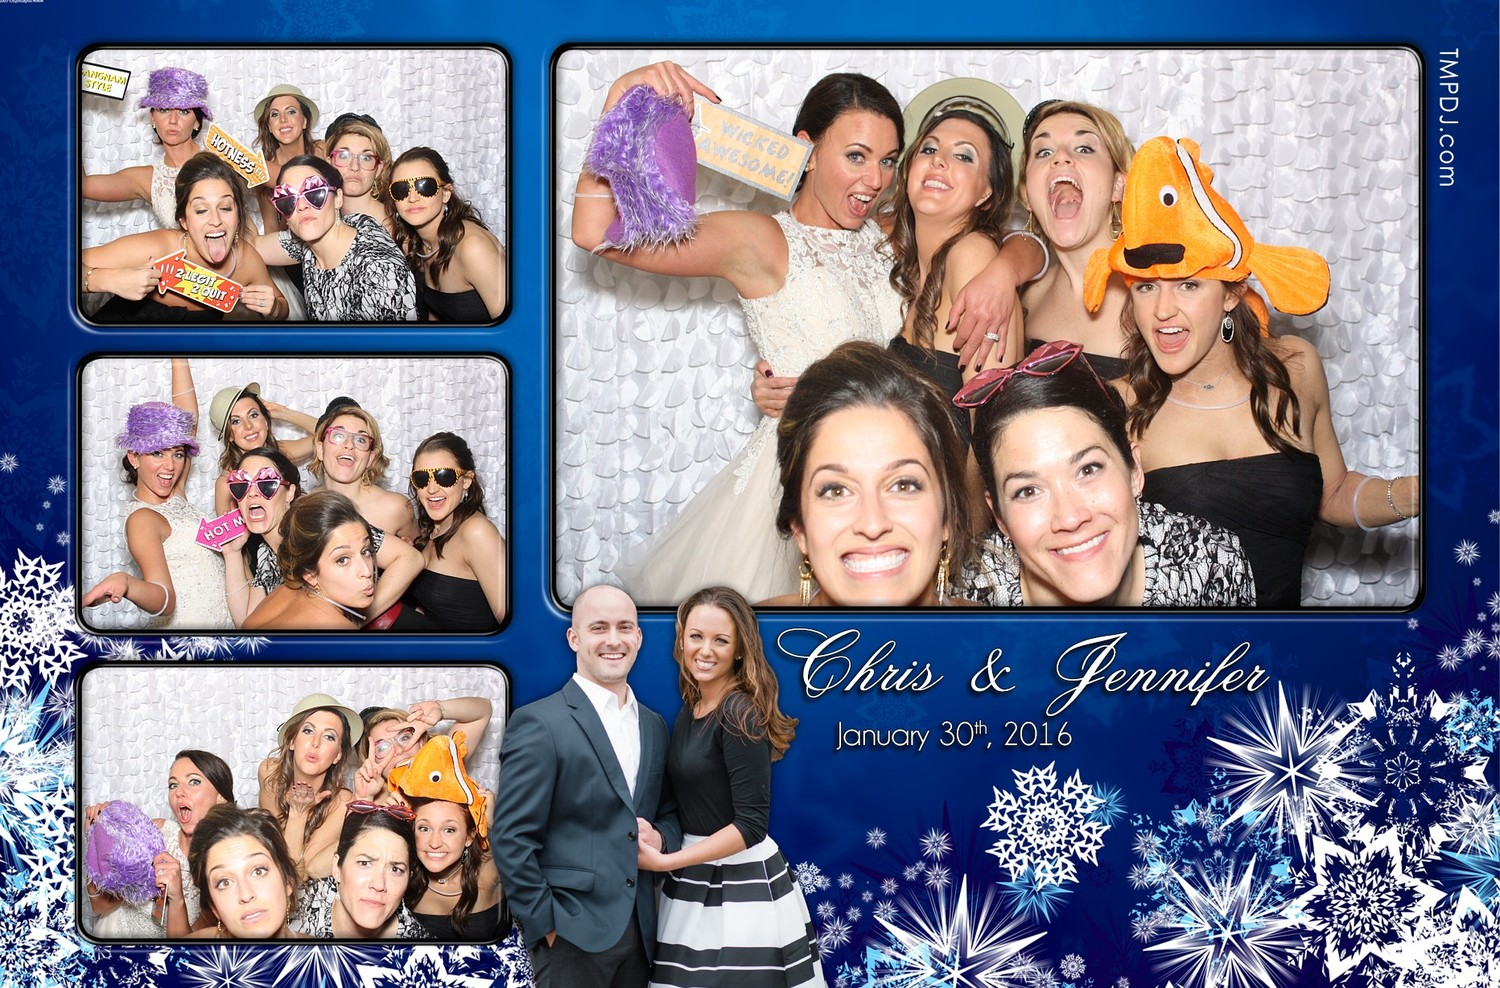 photo-booth-rochester-ny-7.jpg